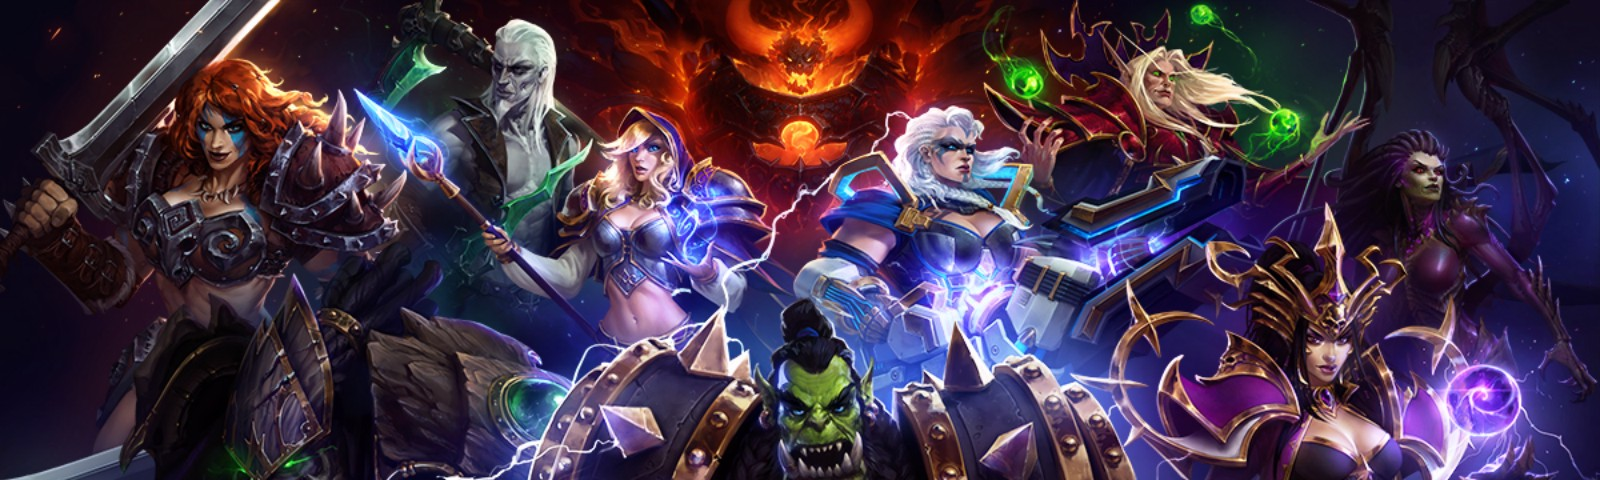 Heroes Of The Storm Get 20 Heroes For Free By Logging In By Sam Lee Hollywood Com Esports Within these pages, you will find. heroes of the storm get 20 heroes for